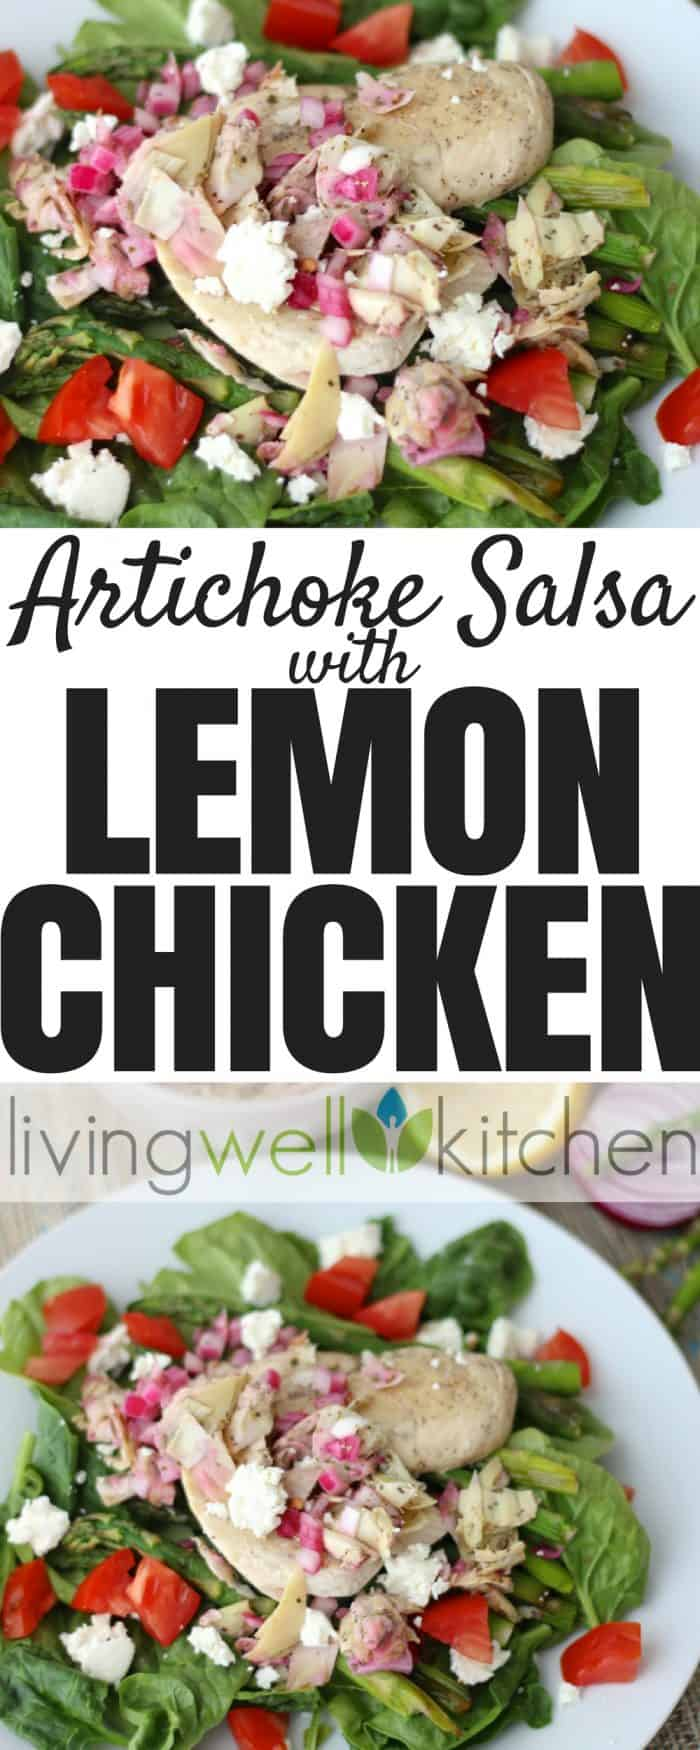 You'll love this bright and refreshing dish of lemon chicken and roasted asparagus covered in a flavorful, veggie-packed salsa. Artichoke Salsa with Lemon Chicken from Living Well Kitchen is a tasty gluten free recipe that's great served over lettuce or grains. via @memeinge    https://blog.memeinge.com/artichoke-salsa-and-lemon-chicken/